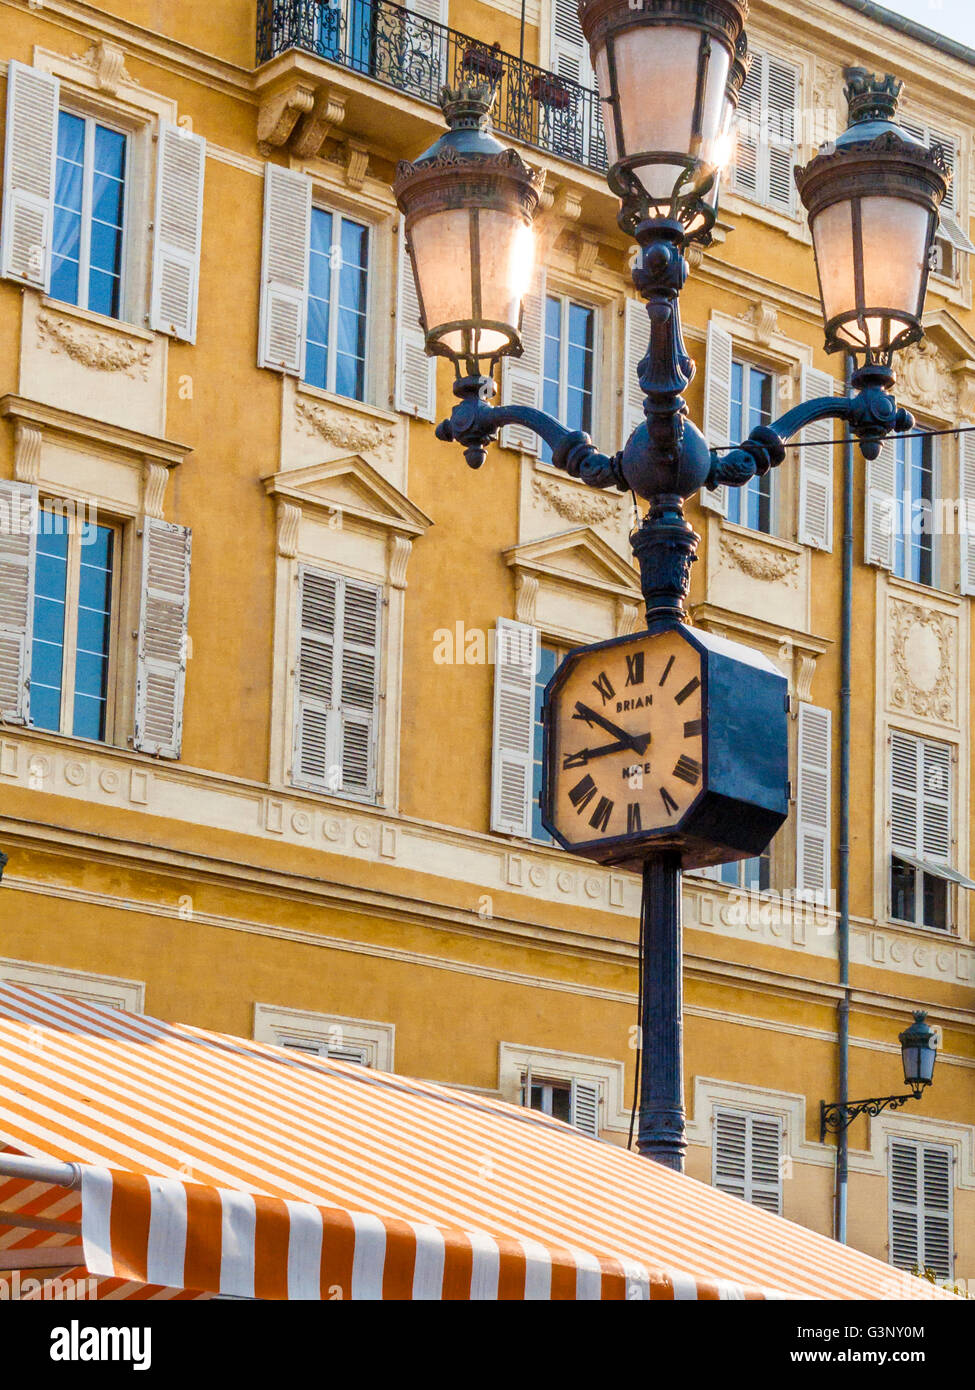 Clock on lamp post Nice market, Cote d'Azur, Nice, France, Europe - Stock Image